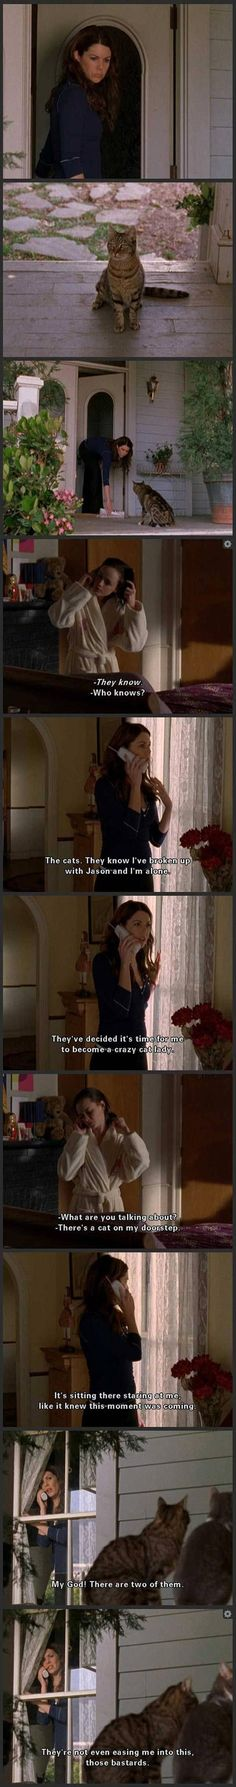 Gilmore Girls!! They KNOW!